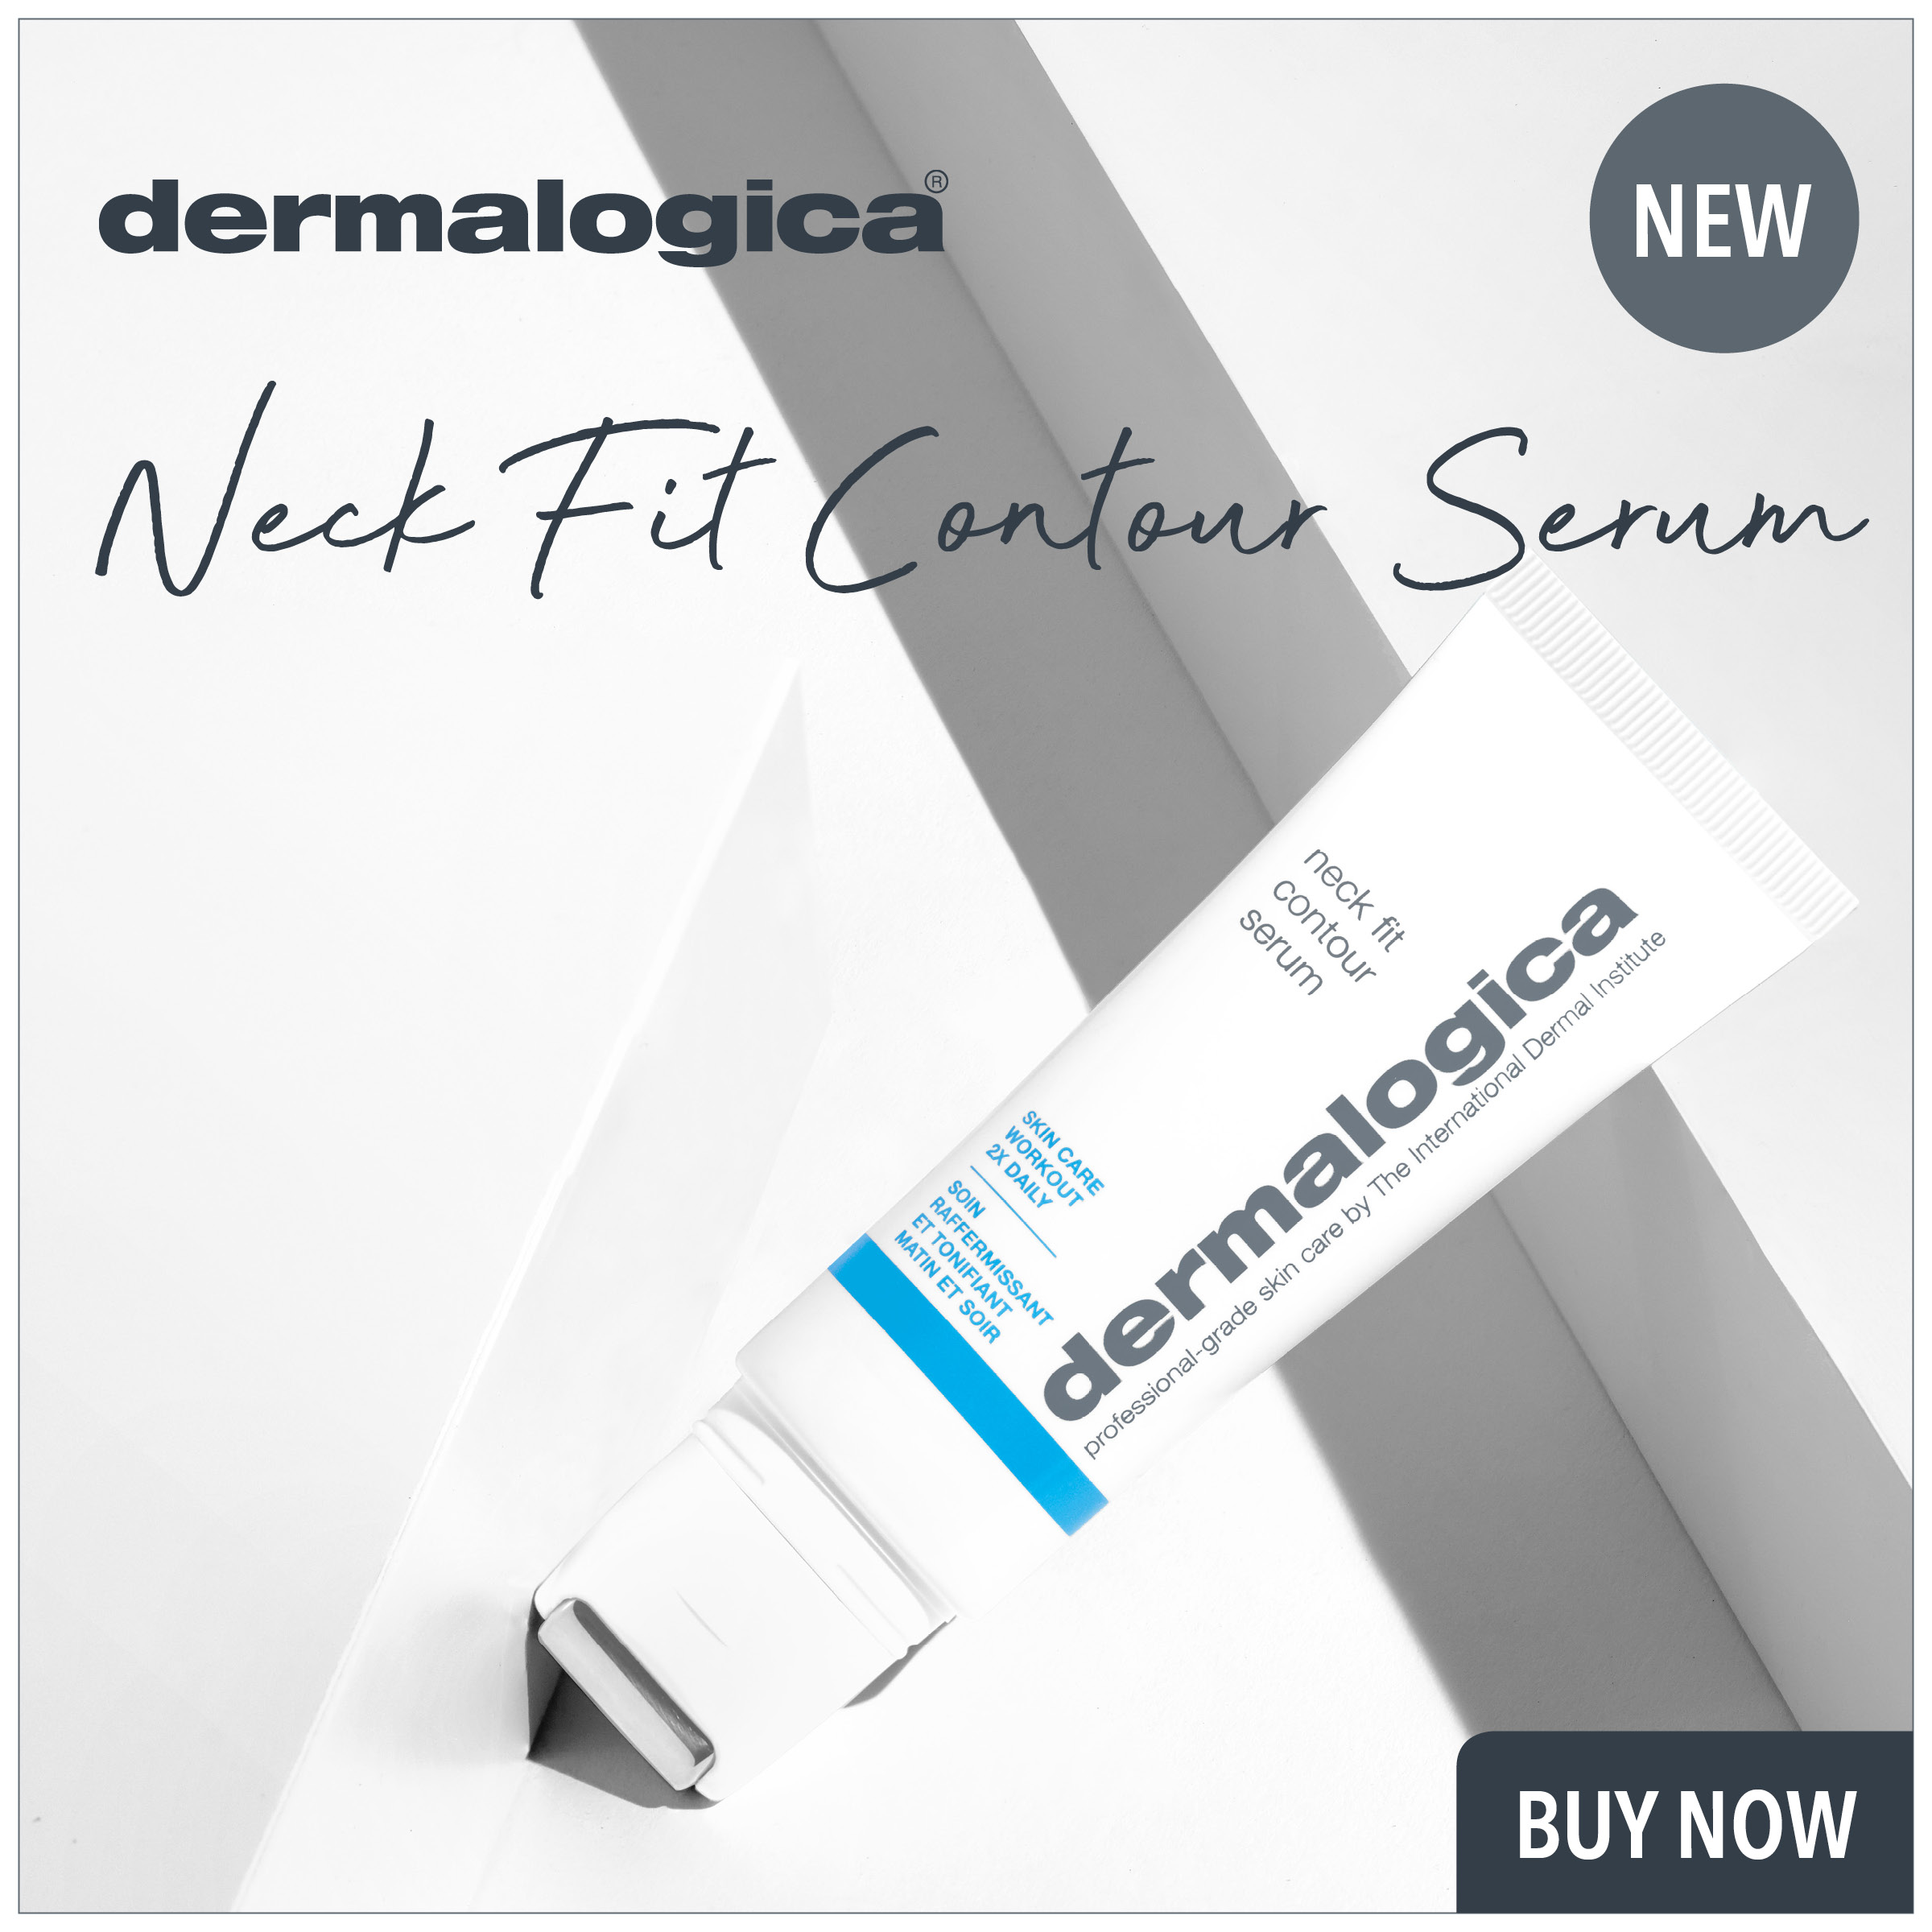 dermalogica neck fit contour serum from prodermal